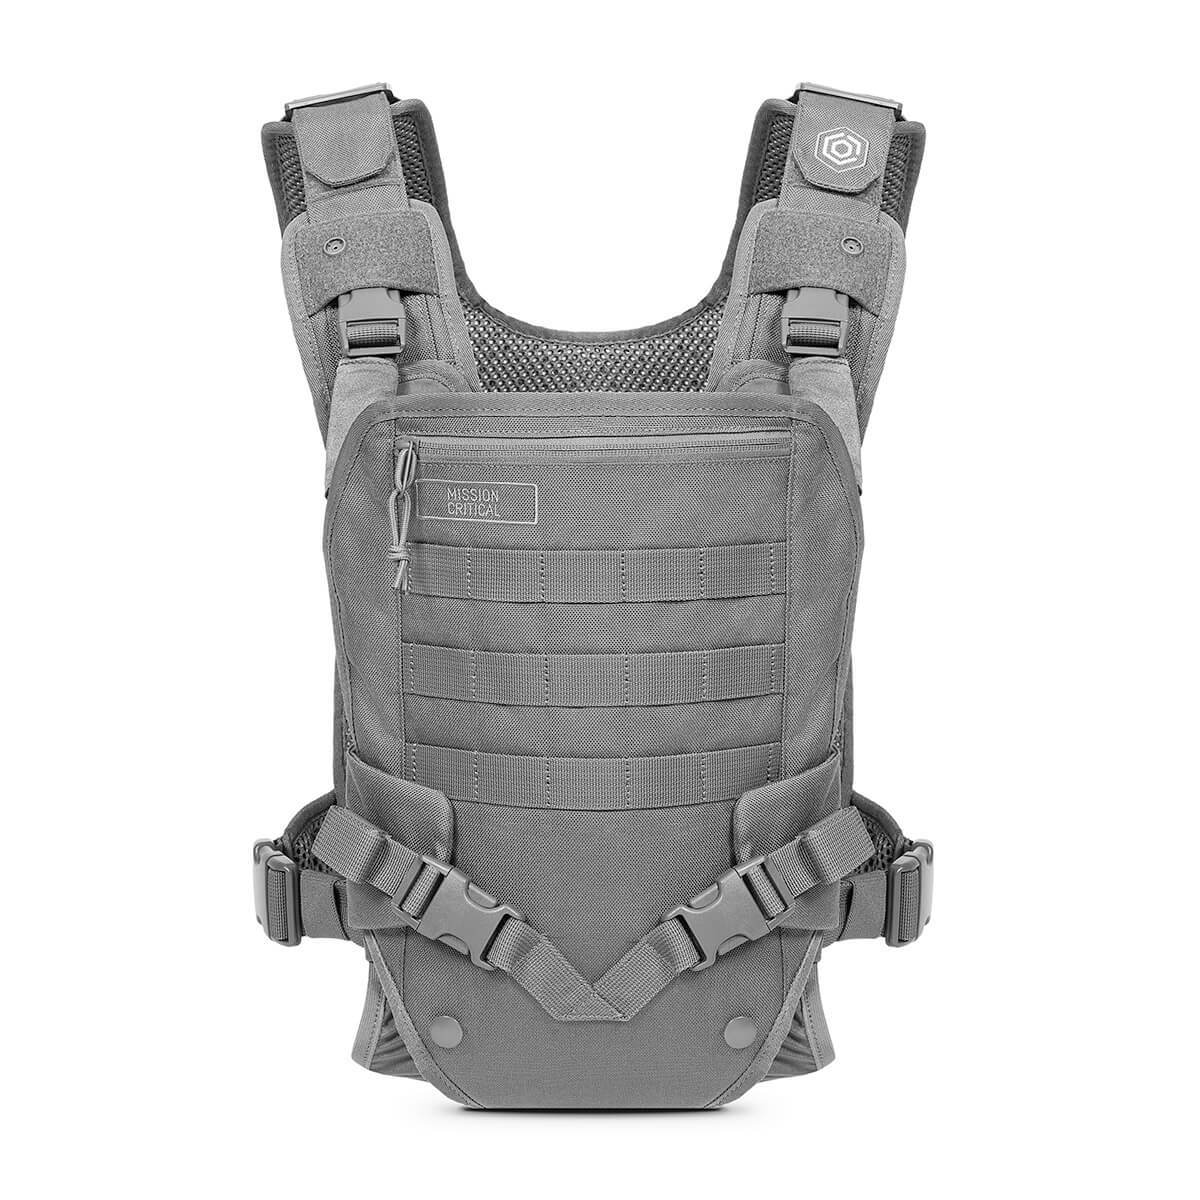 S.01 Action™ Baby Carrier